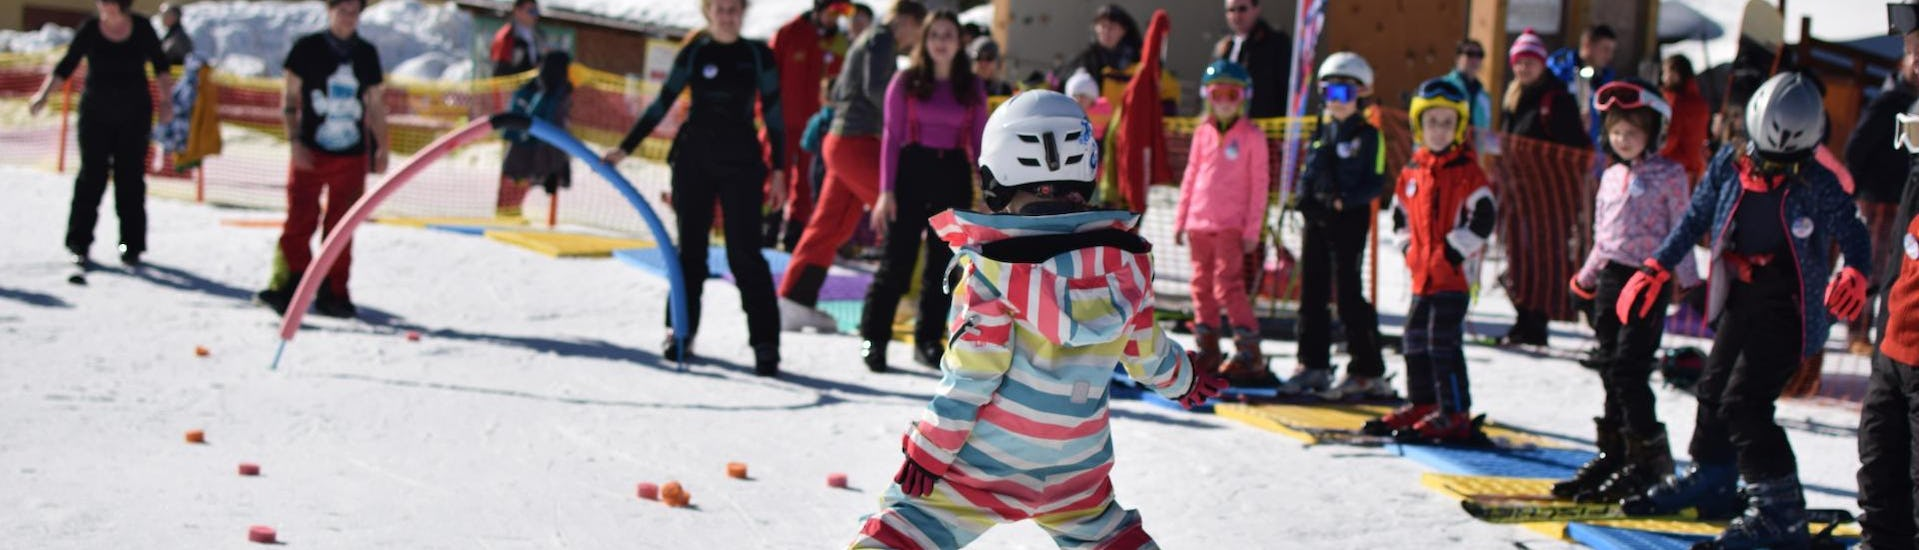 ski-instructor-private-for-kids---all-levels-1-1-1-1-1-1-1-1-1-1-1-1-1-1-1-1-1-1-1-1-1-1-1-1-1-1-1-1-1-1-1-hero